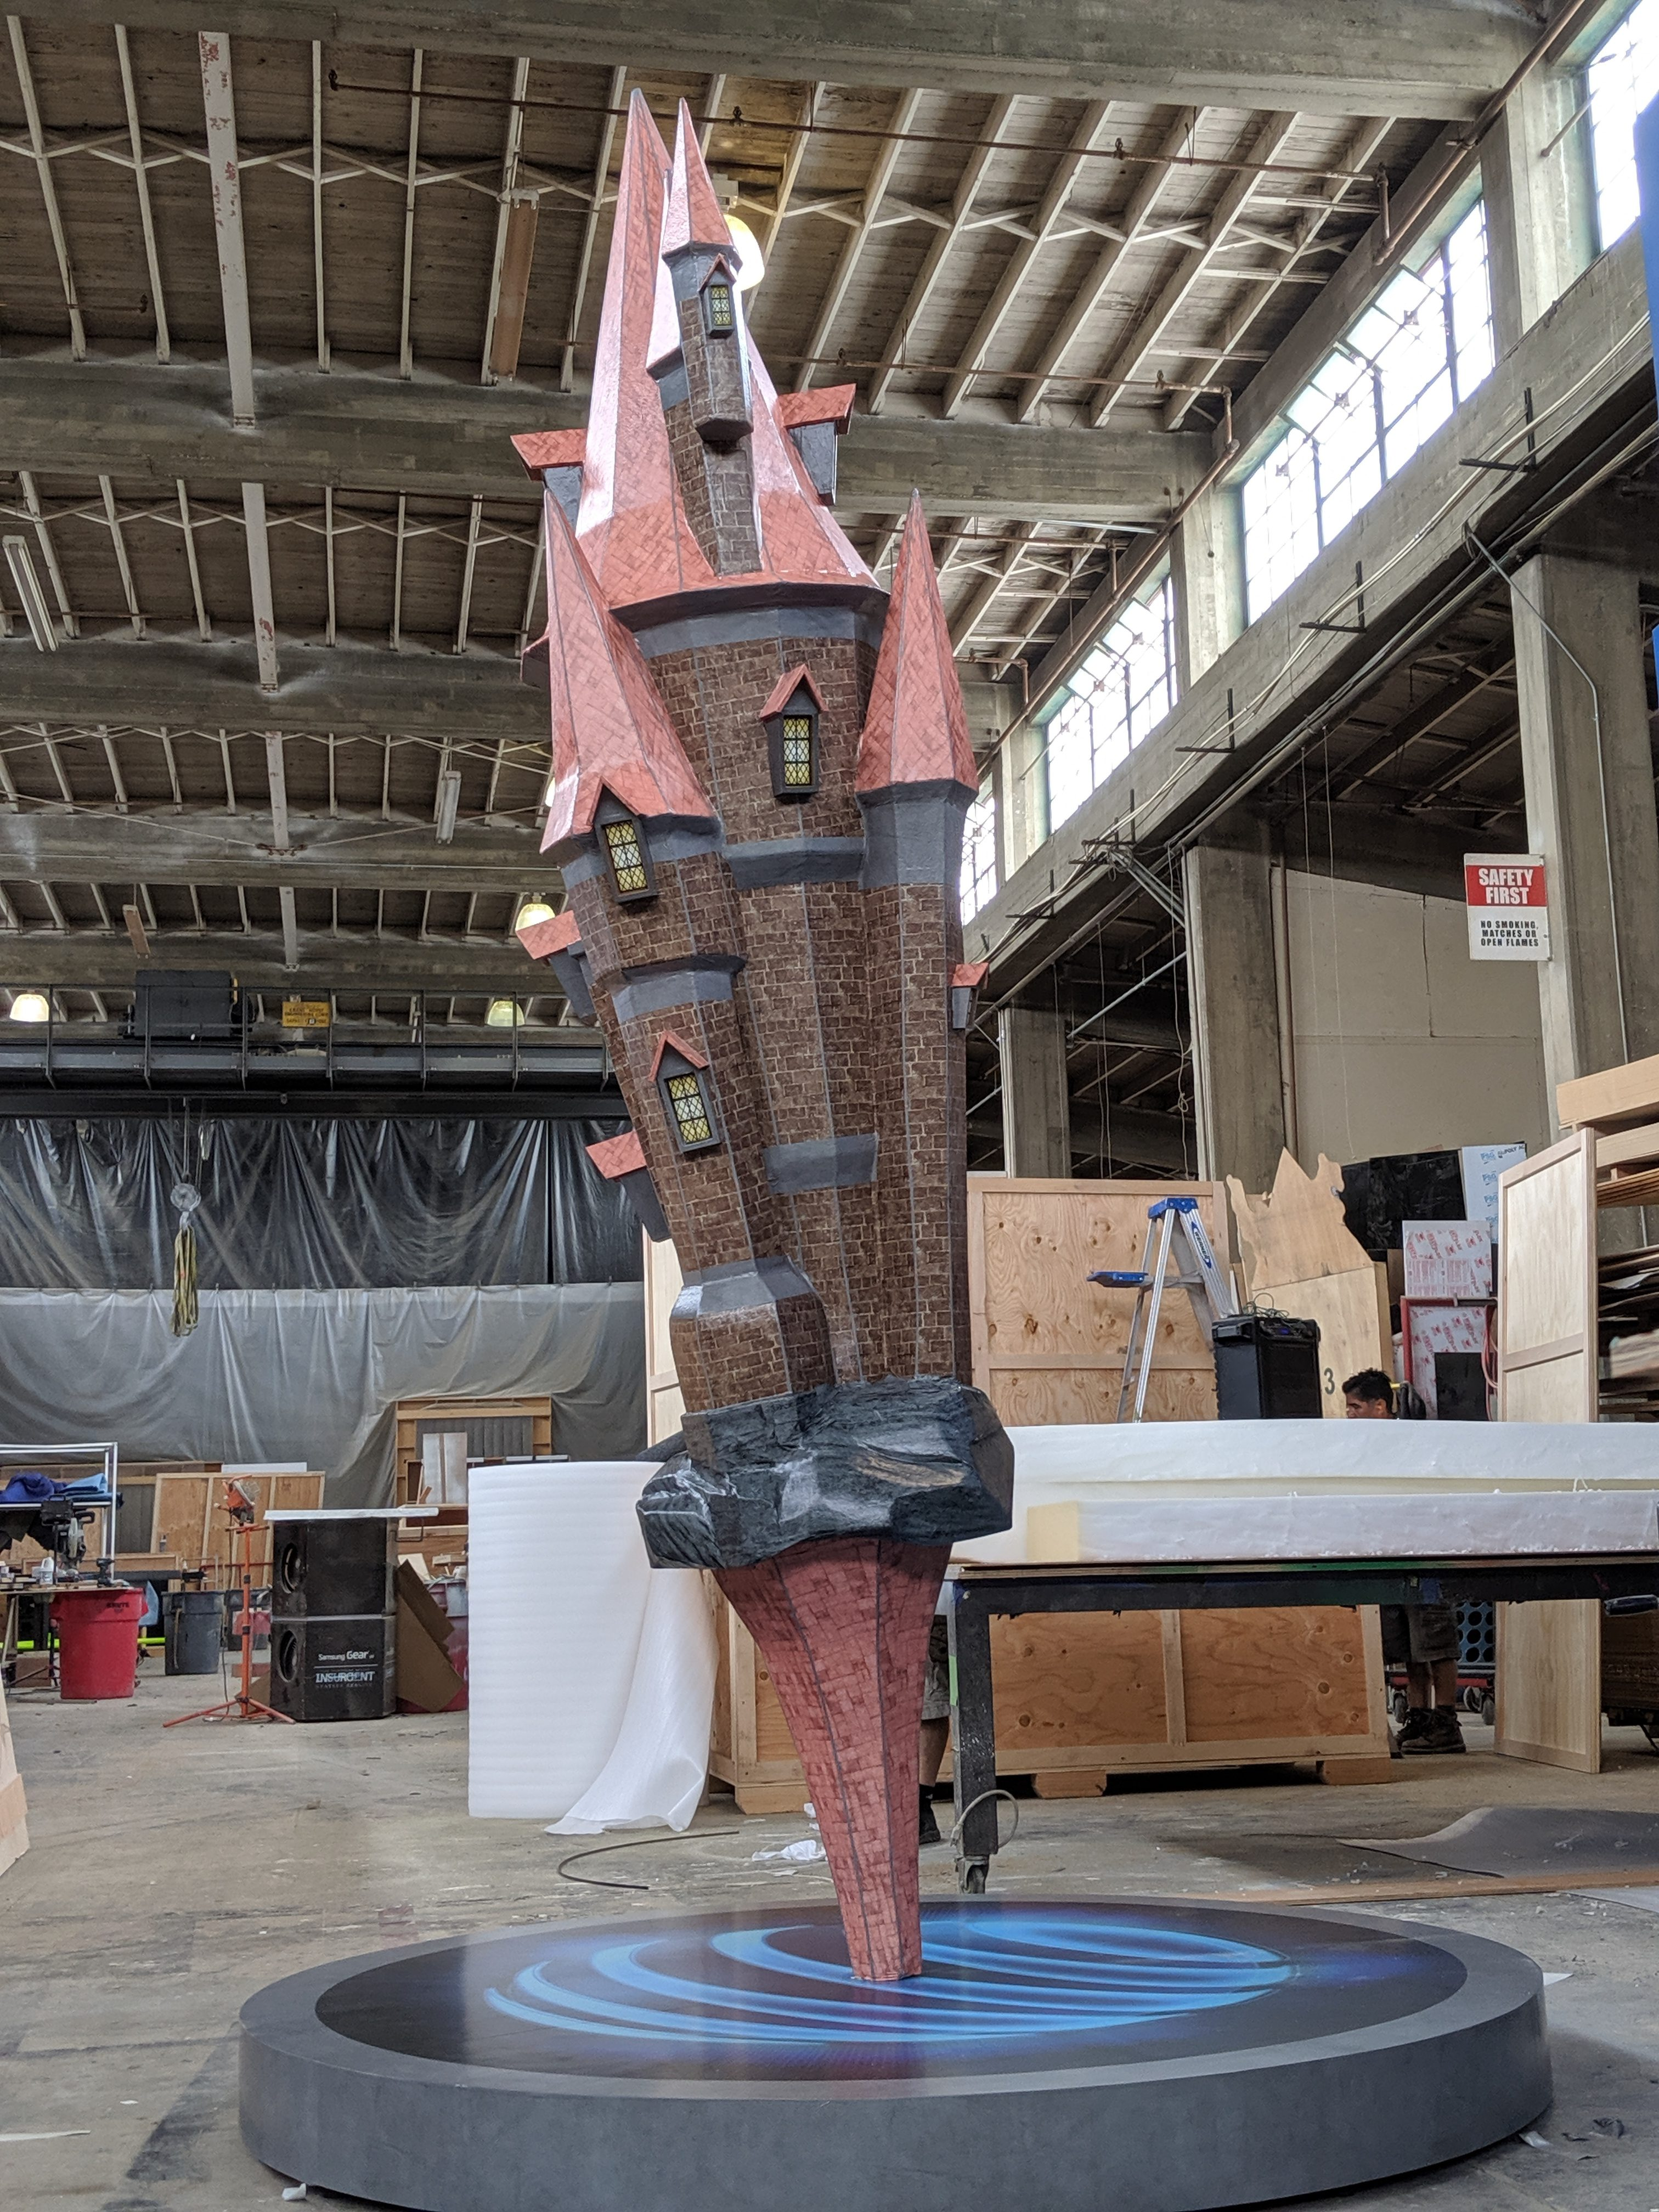 Giant Foam Castle Prop